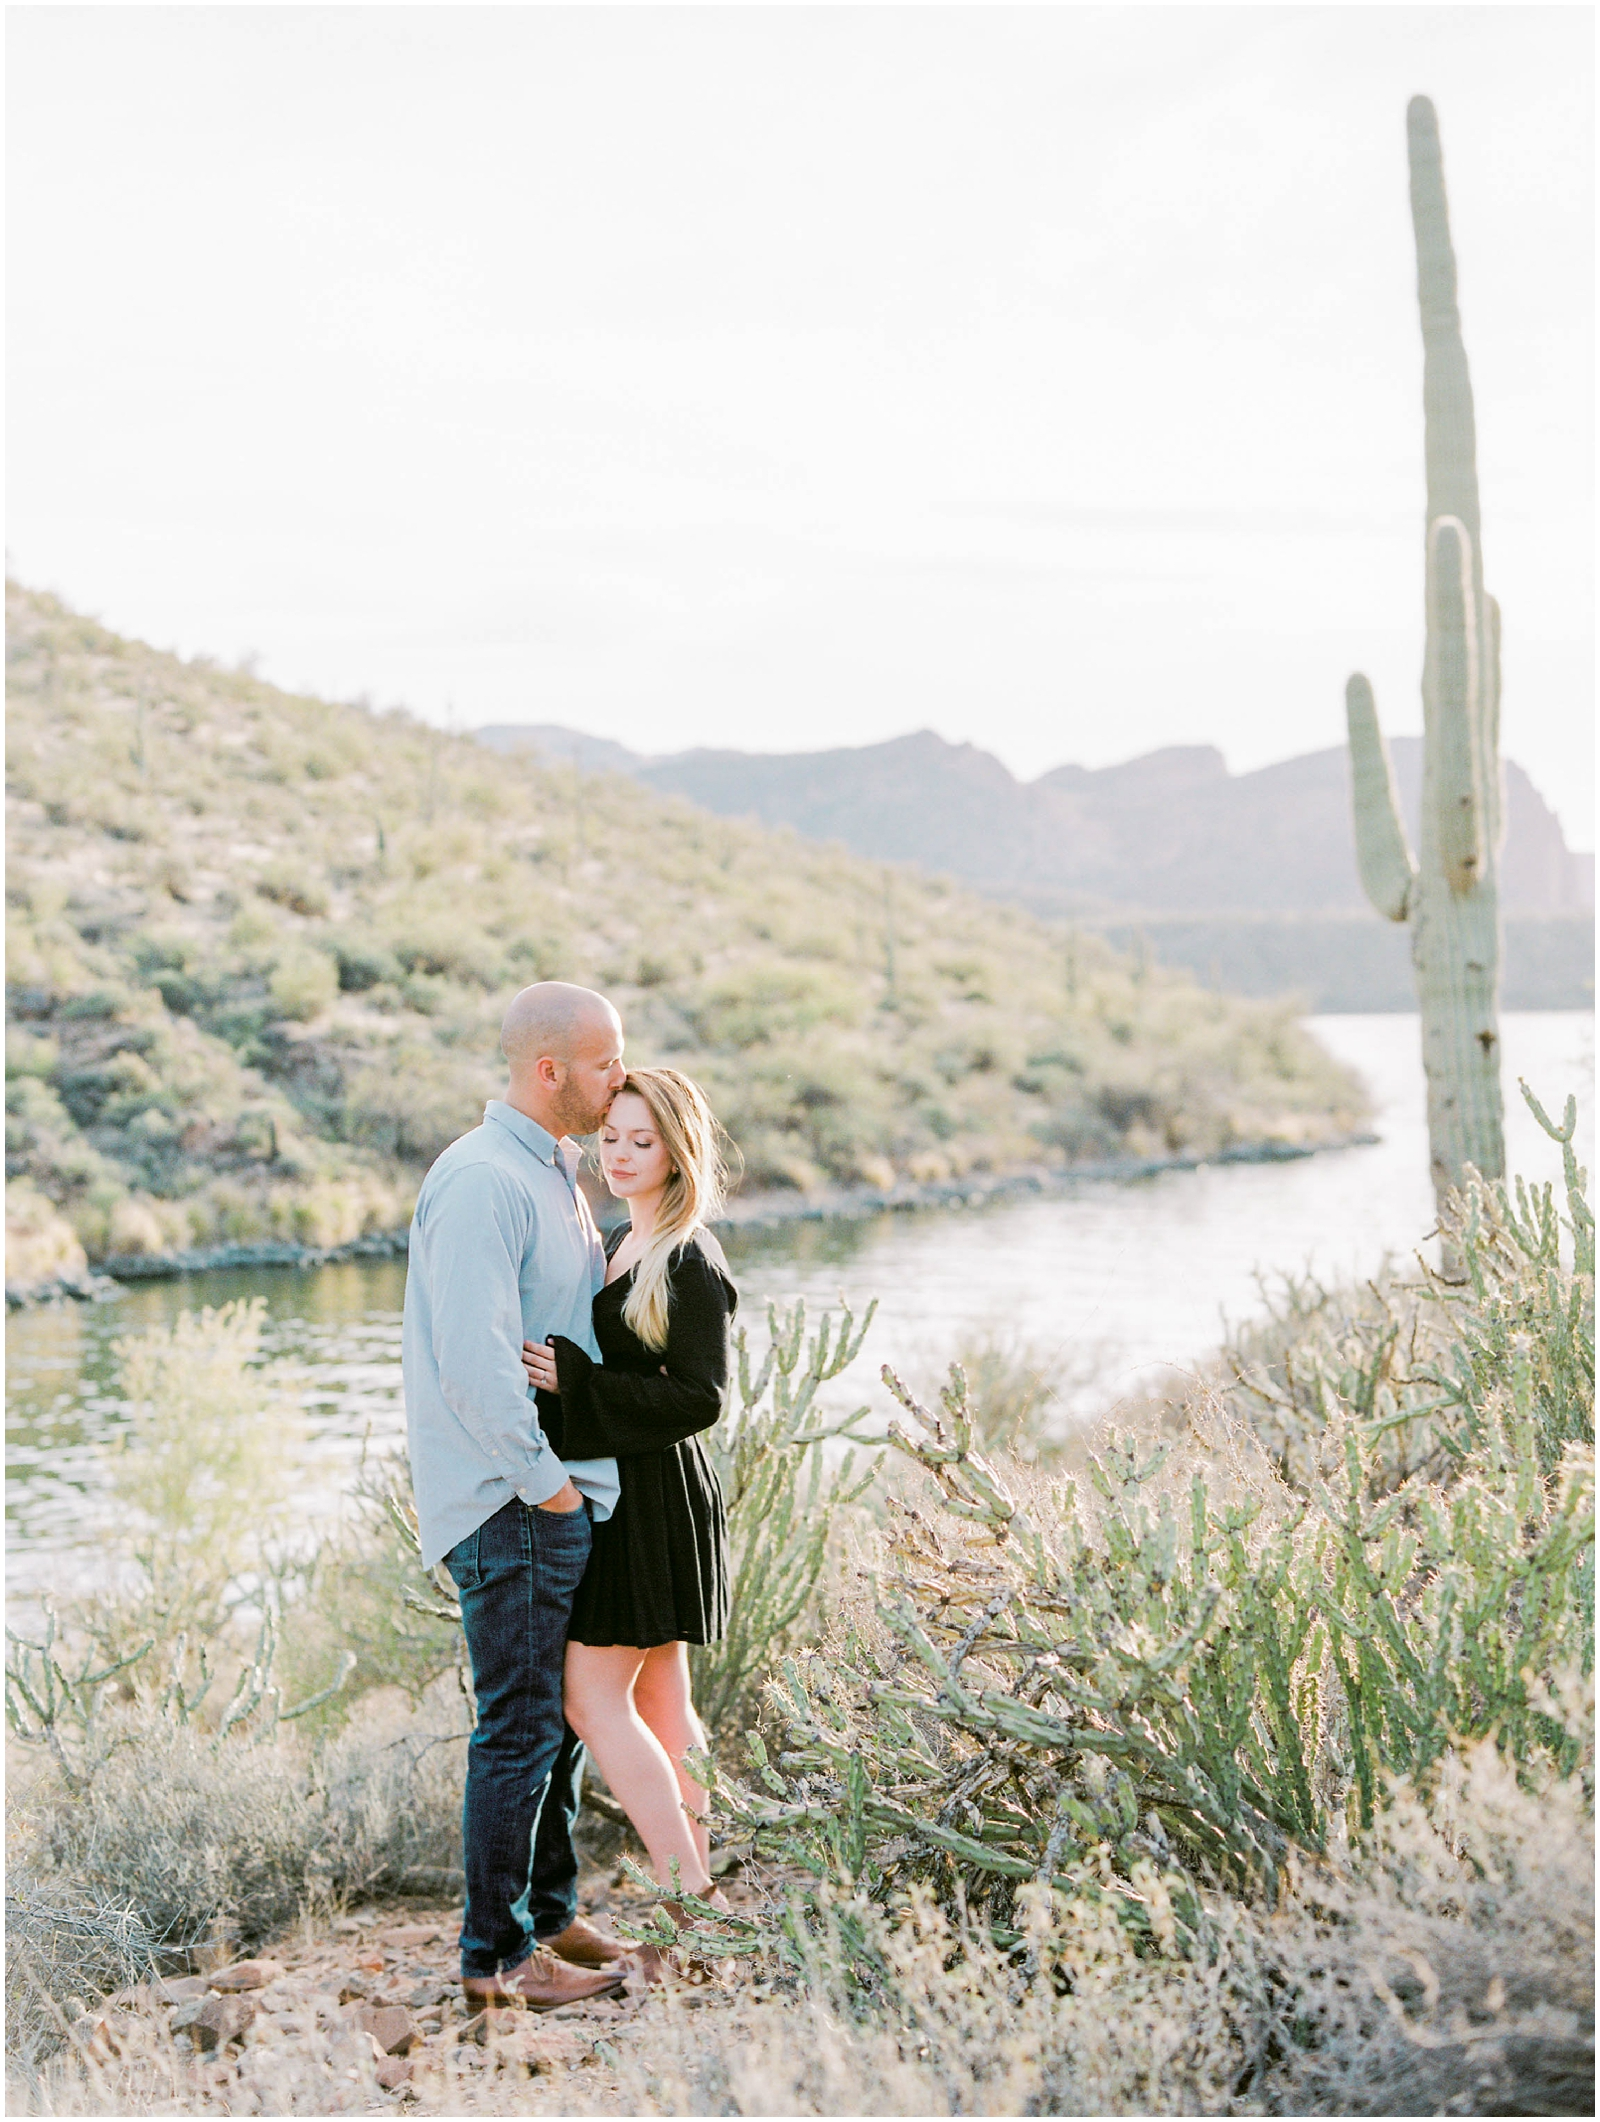 SAGUARO LAKE ENGAGEMENT – KATIE & RYAN